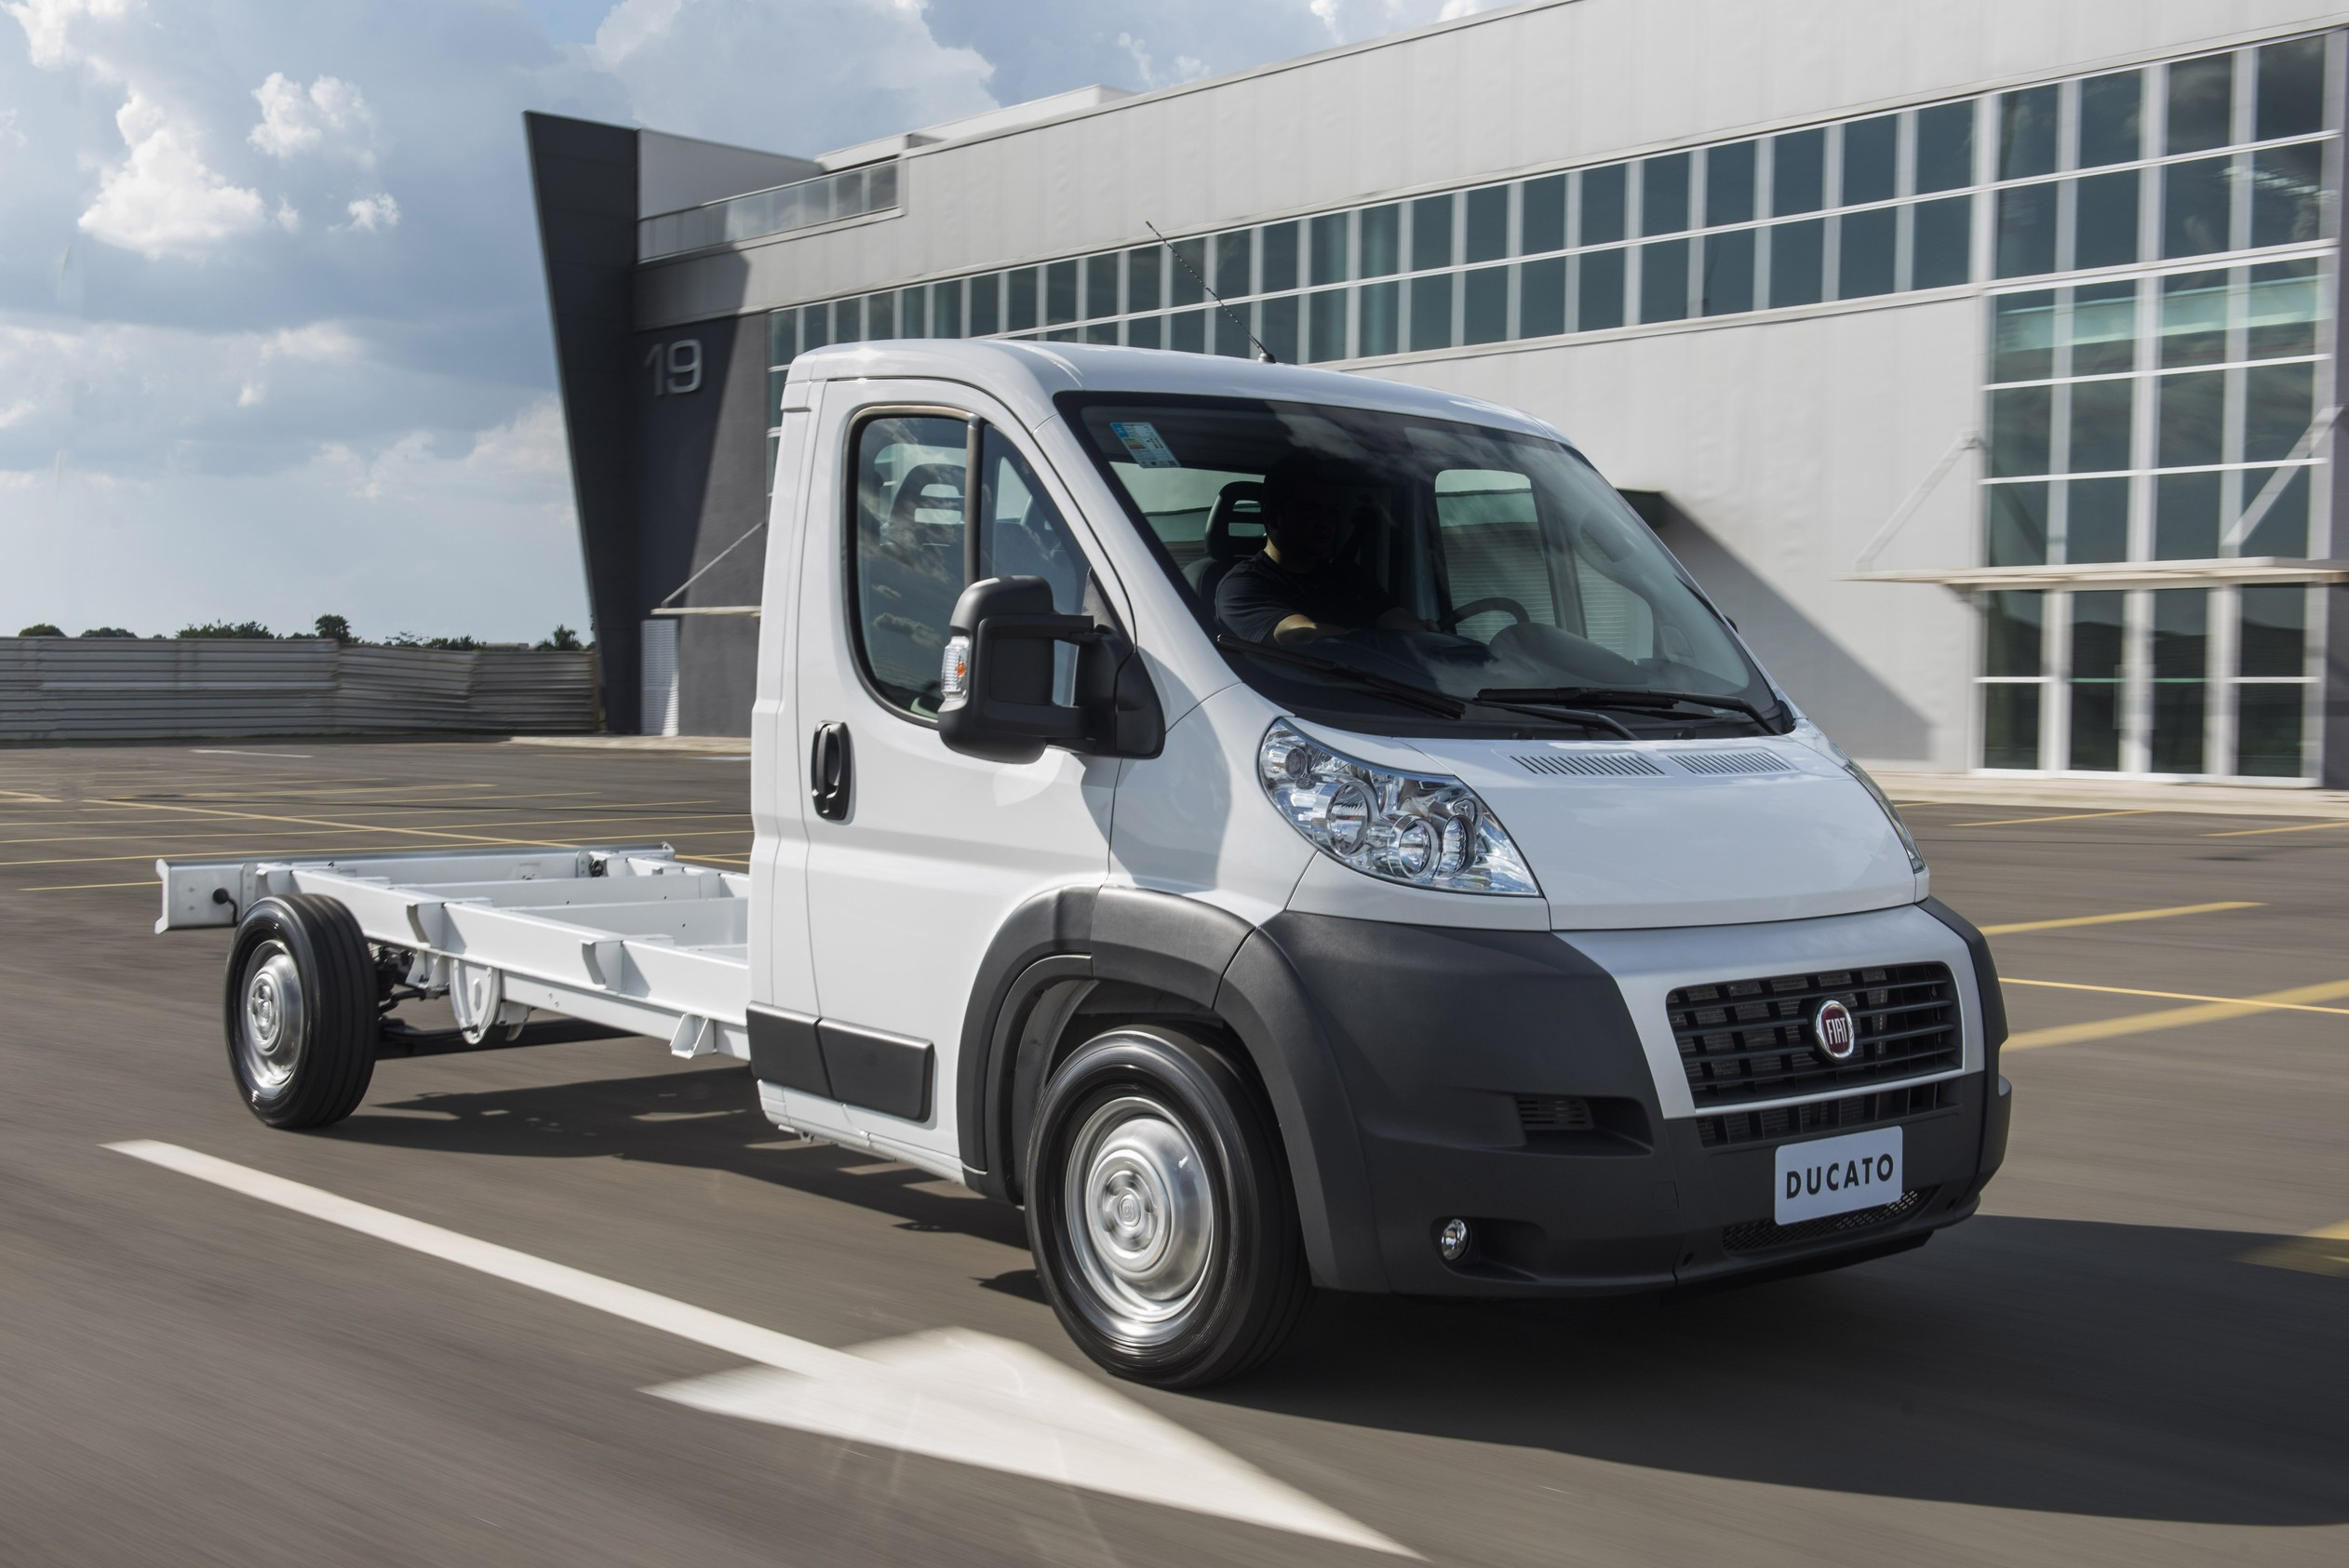 names inaugural association images press its fp fiat and apmp ducato the awards motoring van new car professional year in article of